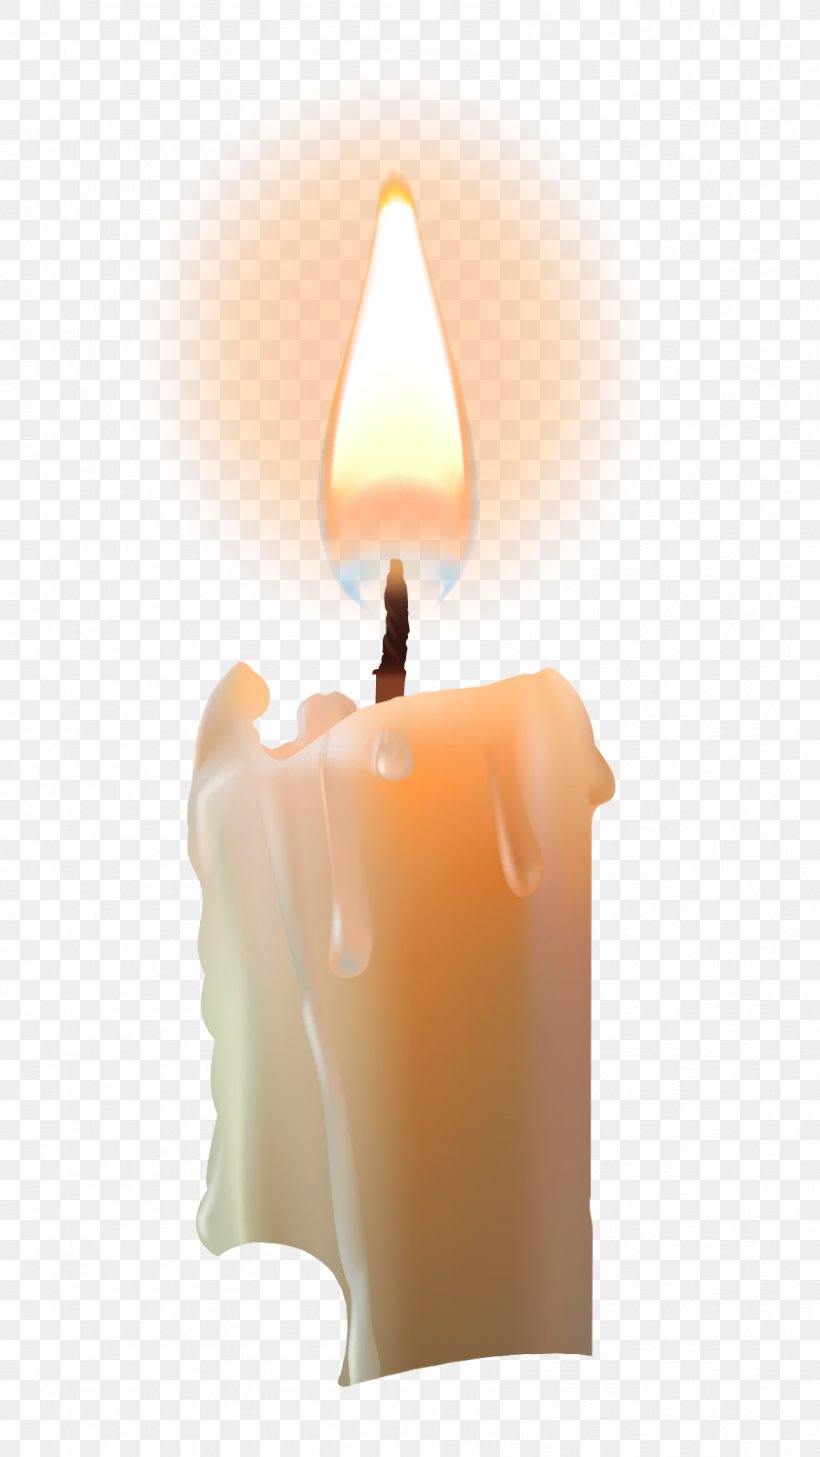 Candle Computer File, PNG, 844x1500px, Light, Candela, Candle, Decor, Fire Download Free